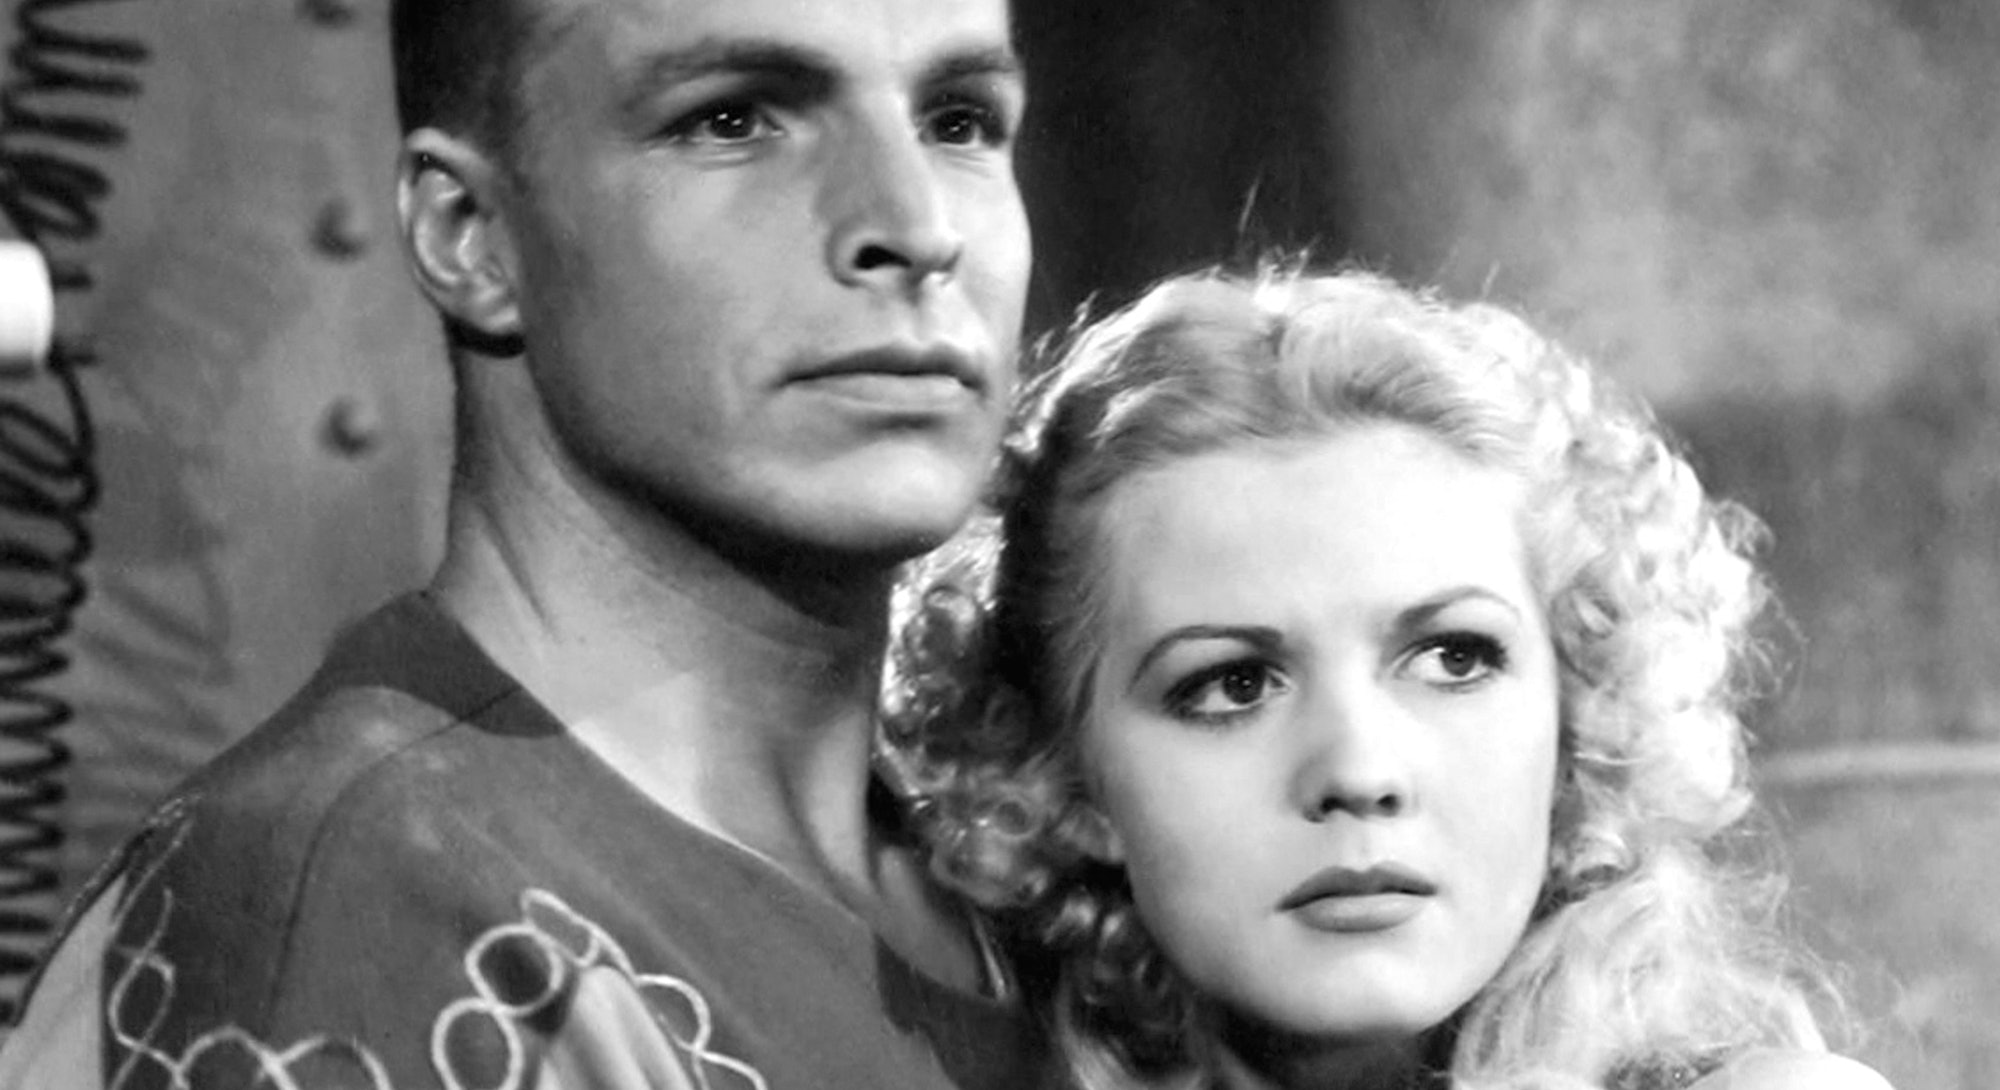 Actors Buster Crabbe as Flash Gordon and Jean Rogers as Dale Arden in the 1936 film serial 'Flash Gordon', 1936.   (Photo by Silver Screen Collection/Getty Images)